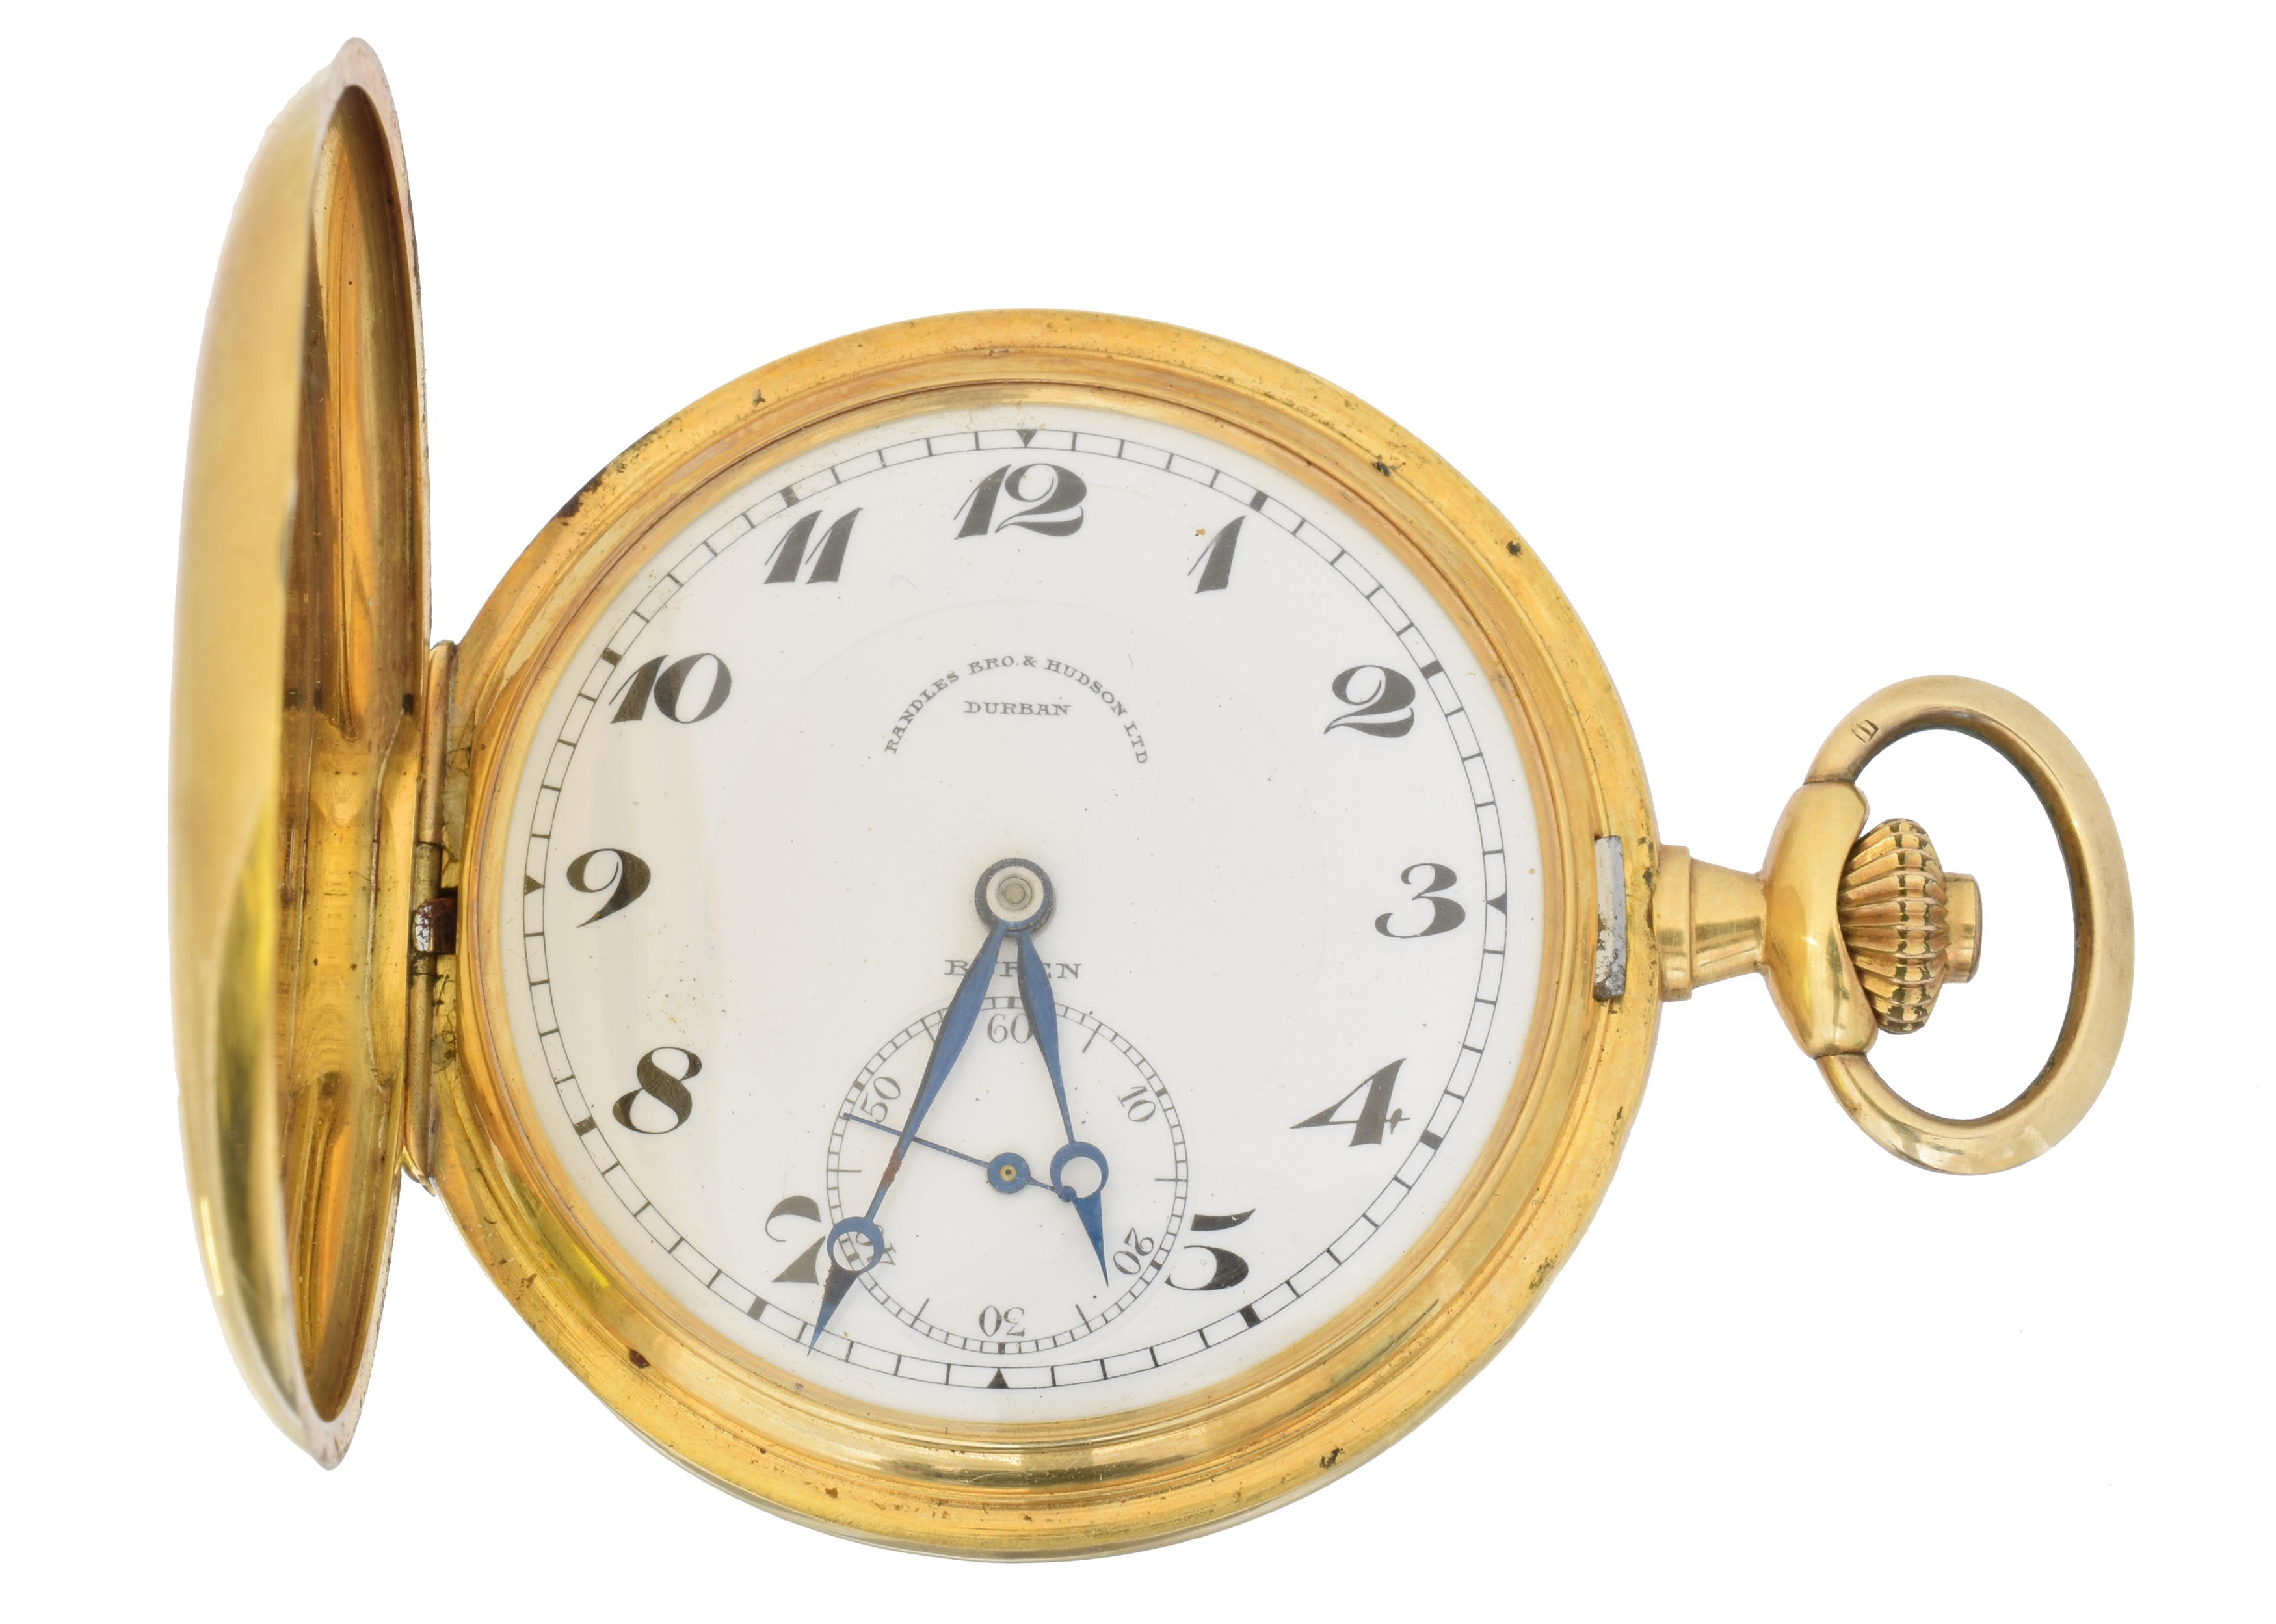 An 18ct gold full hunter pocket watch by Buren, the white enamel dial signed 'Randles Bro & Hudson Ltd Durban, Buren' with Roman numeral hour markers, subsidiary seconds dial to 6 and outer minutes track, signed keyless movement, within an 18ct gold case bearing Swiss assay marks, numbered 55526, with monogram and dated inscription 25.2.33 to front, case diameter 47mm, gross weight 70g.